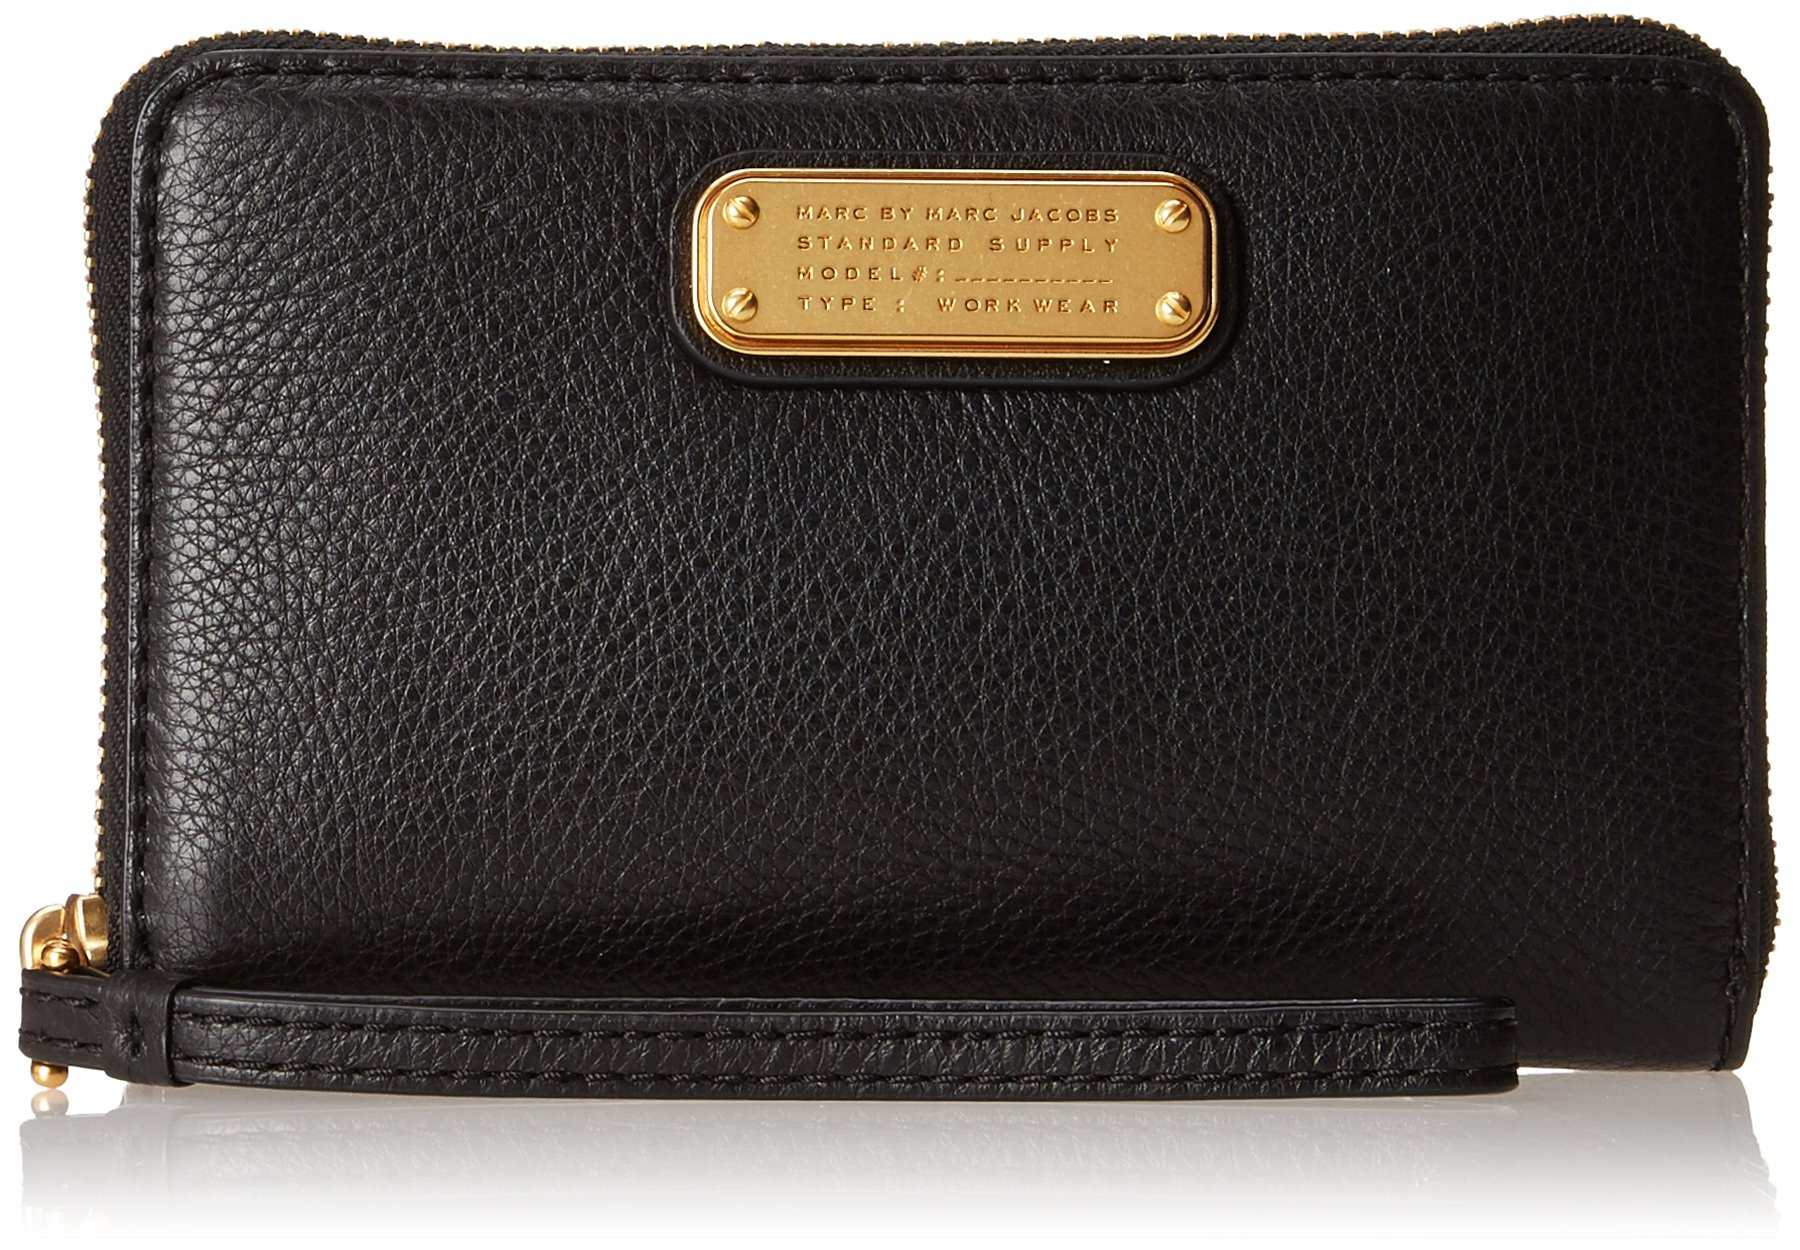 Marc by Marc Jacobs New Q Wingman Wristlet, Black, One Size